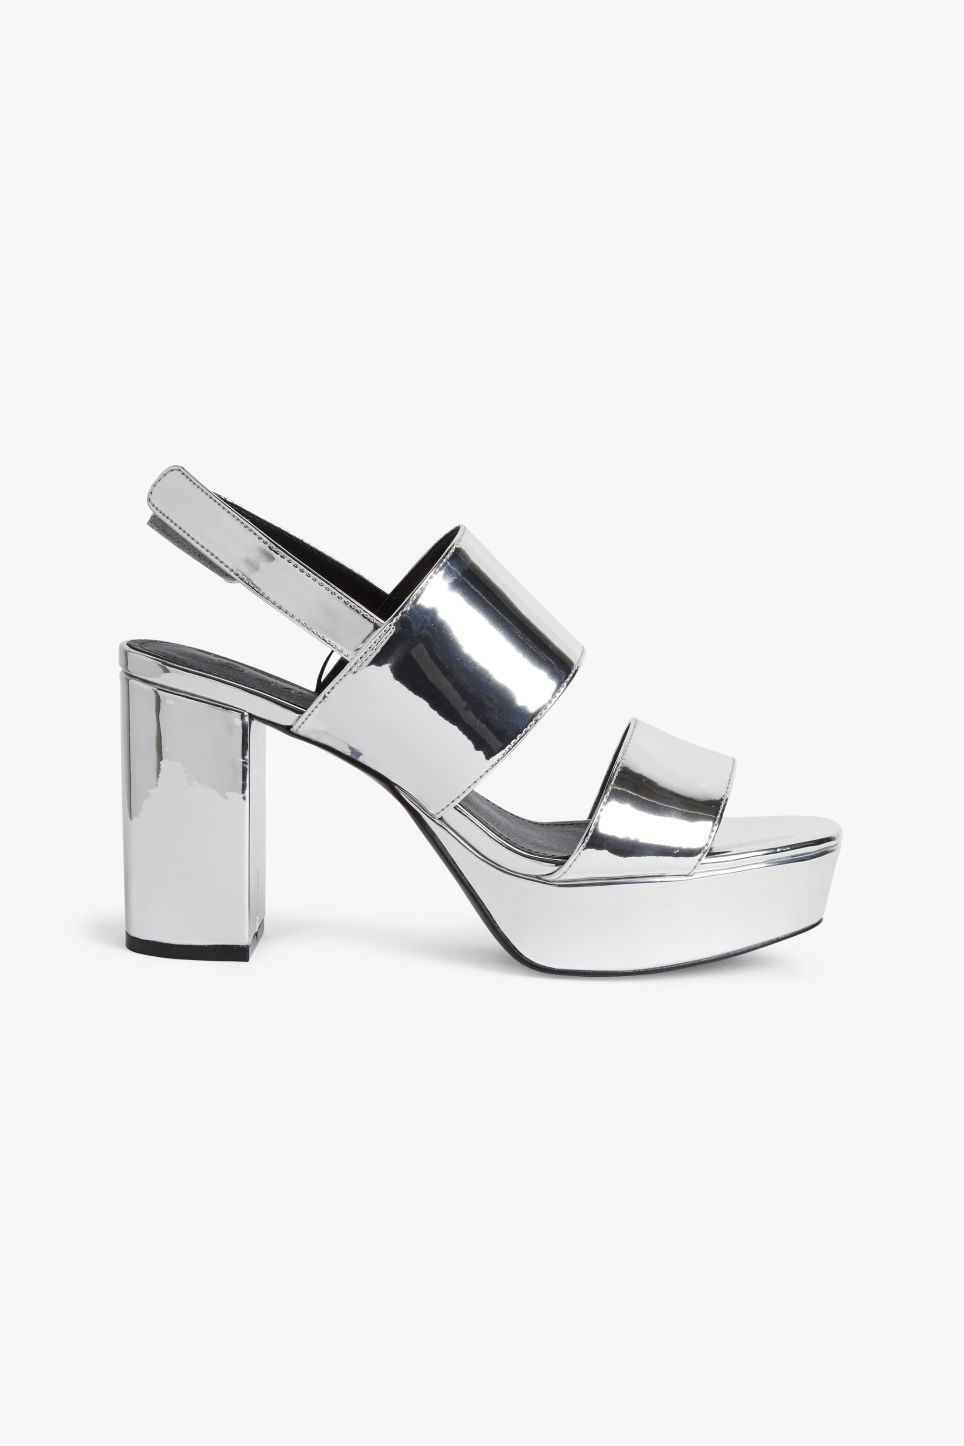 Detailed image of Monki platform heels in silver